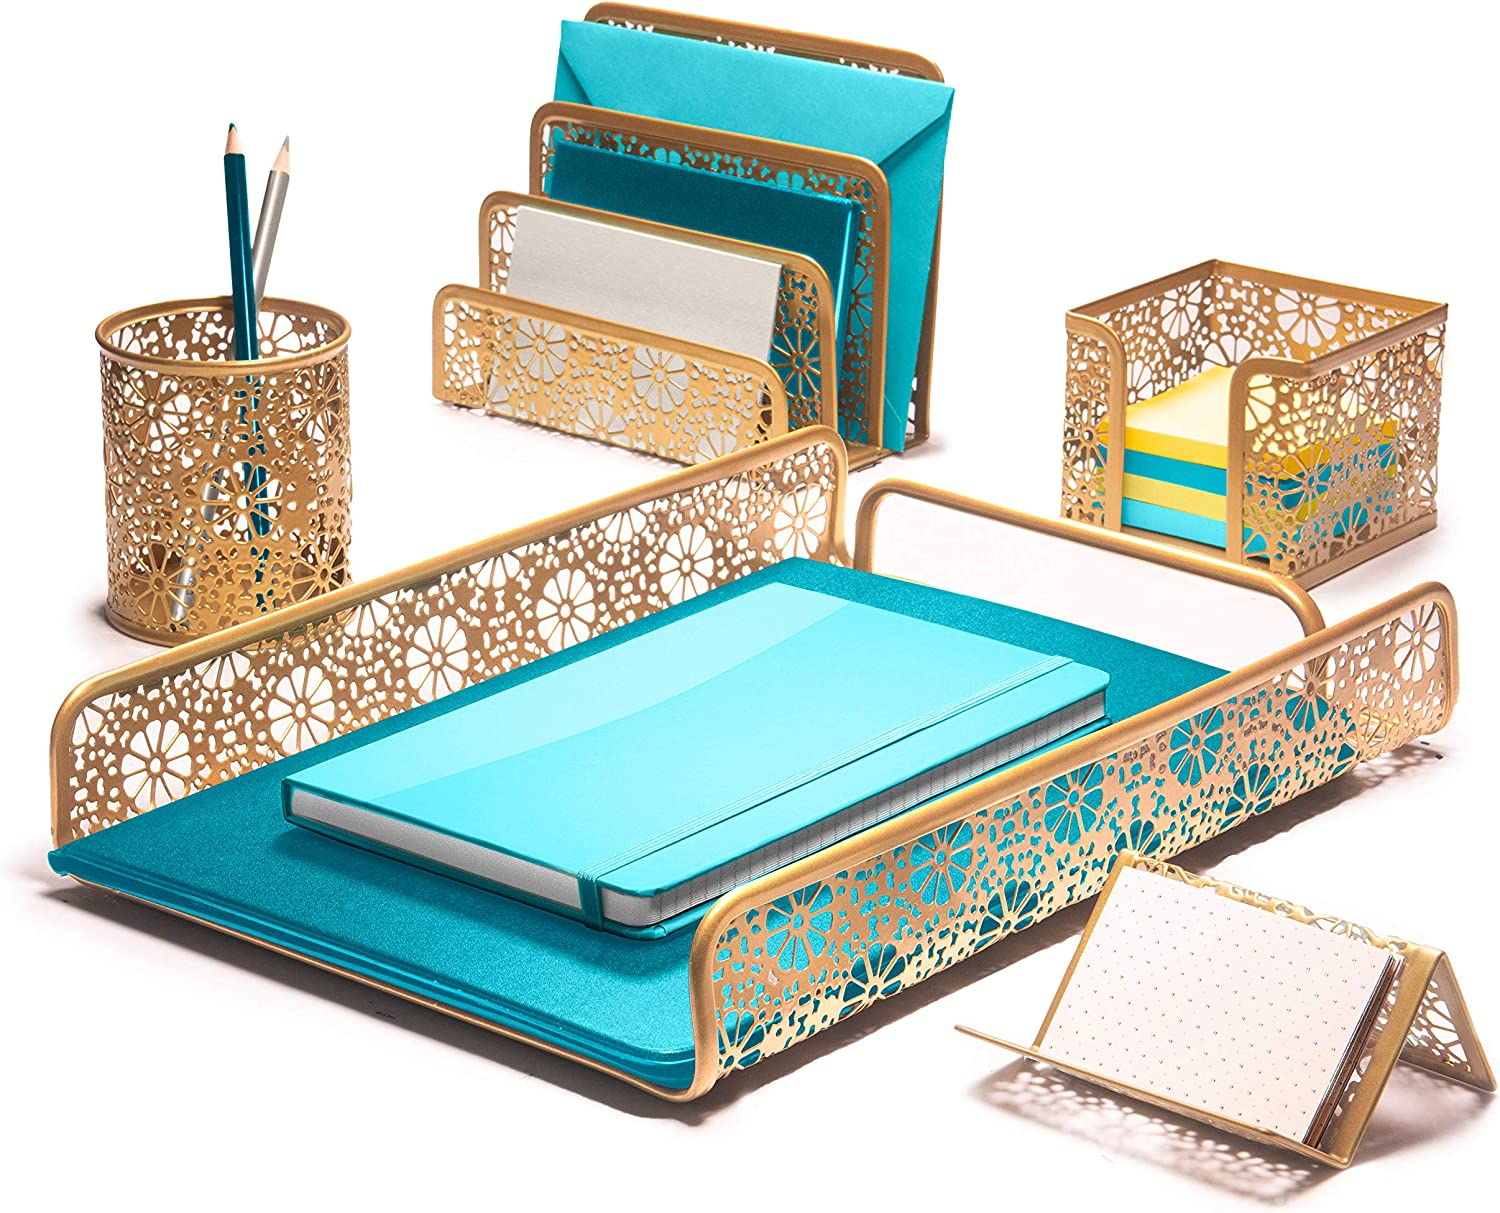 Hudstill Gold Cute Desk Organizer Set for Women and Girls in Pretty Design with 5 Office Supplies Accessories : File Tray, Mail Sorter, Pen Cup, Holders for Sticky Notes, Business Cards or Cellphones